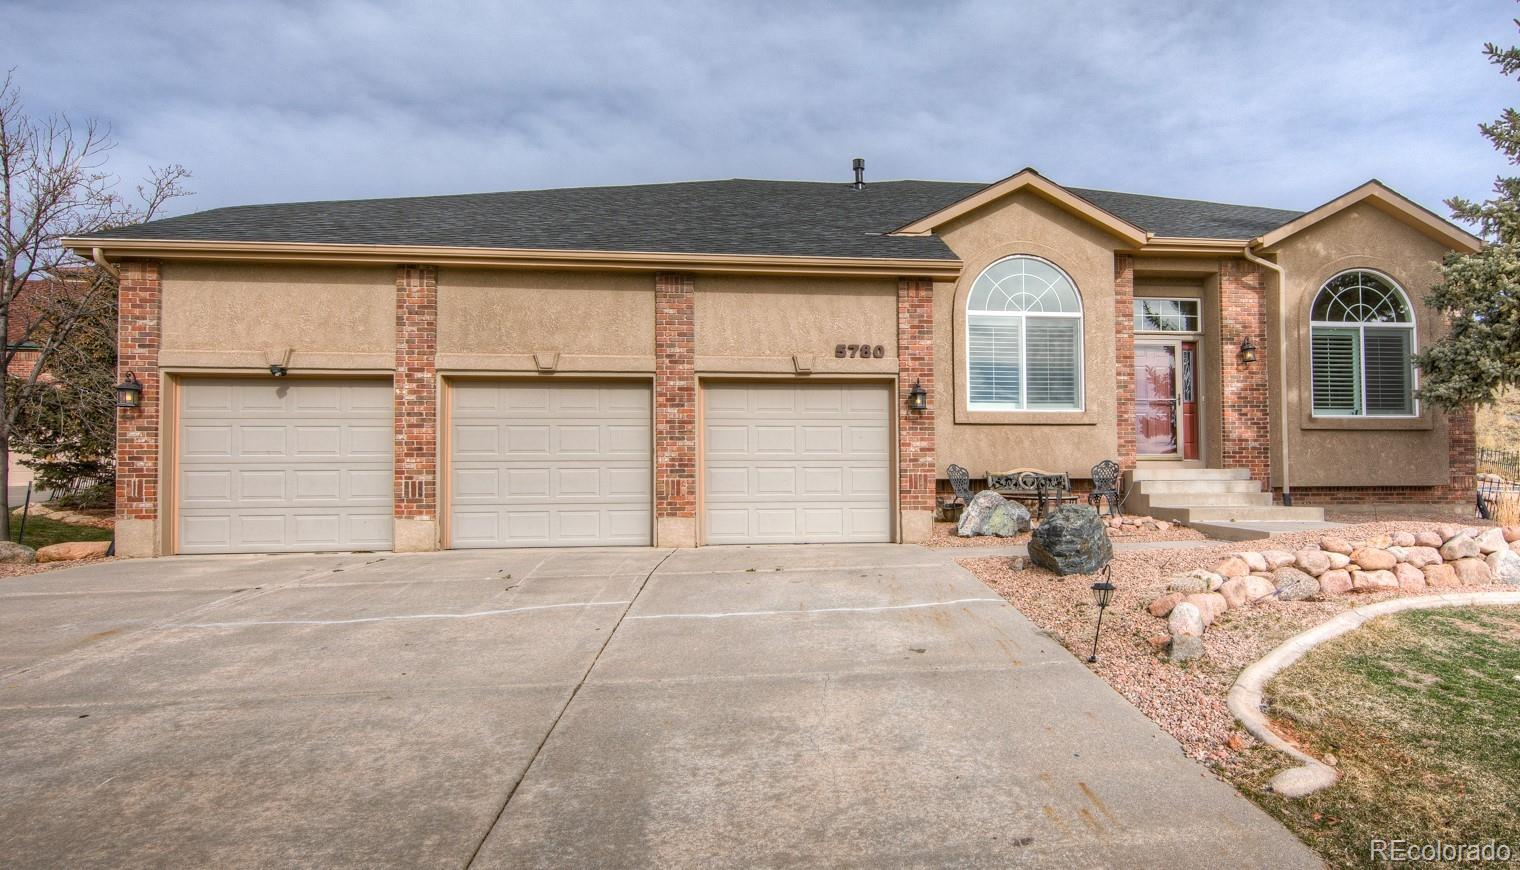 5780 Linger Way, Colorado Springs, CO 80919 - Colorado Springs, CO real estate listing